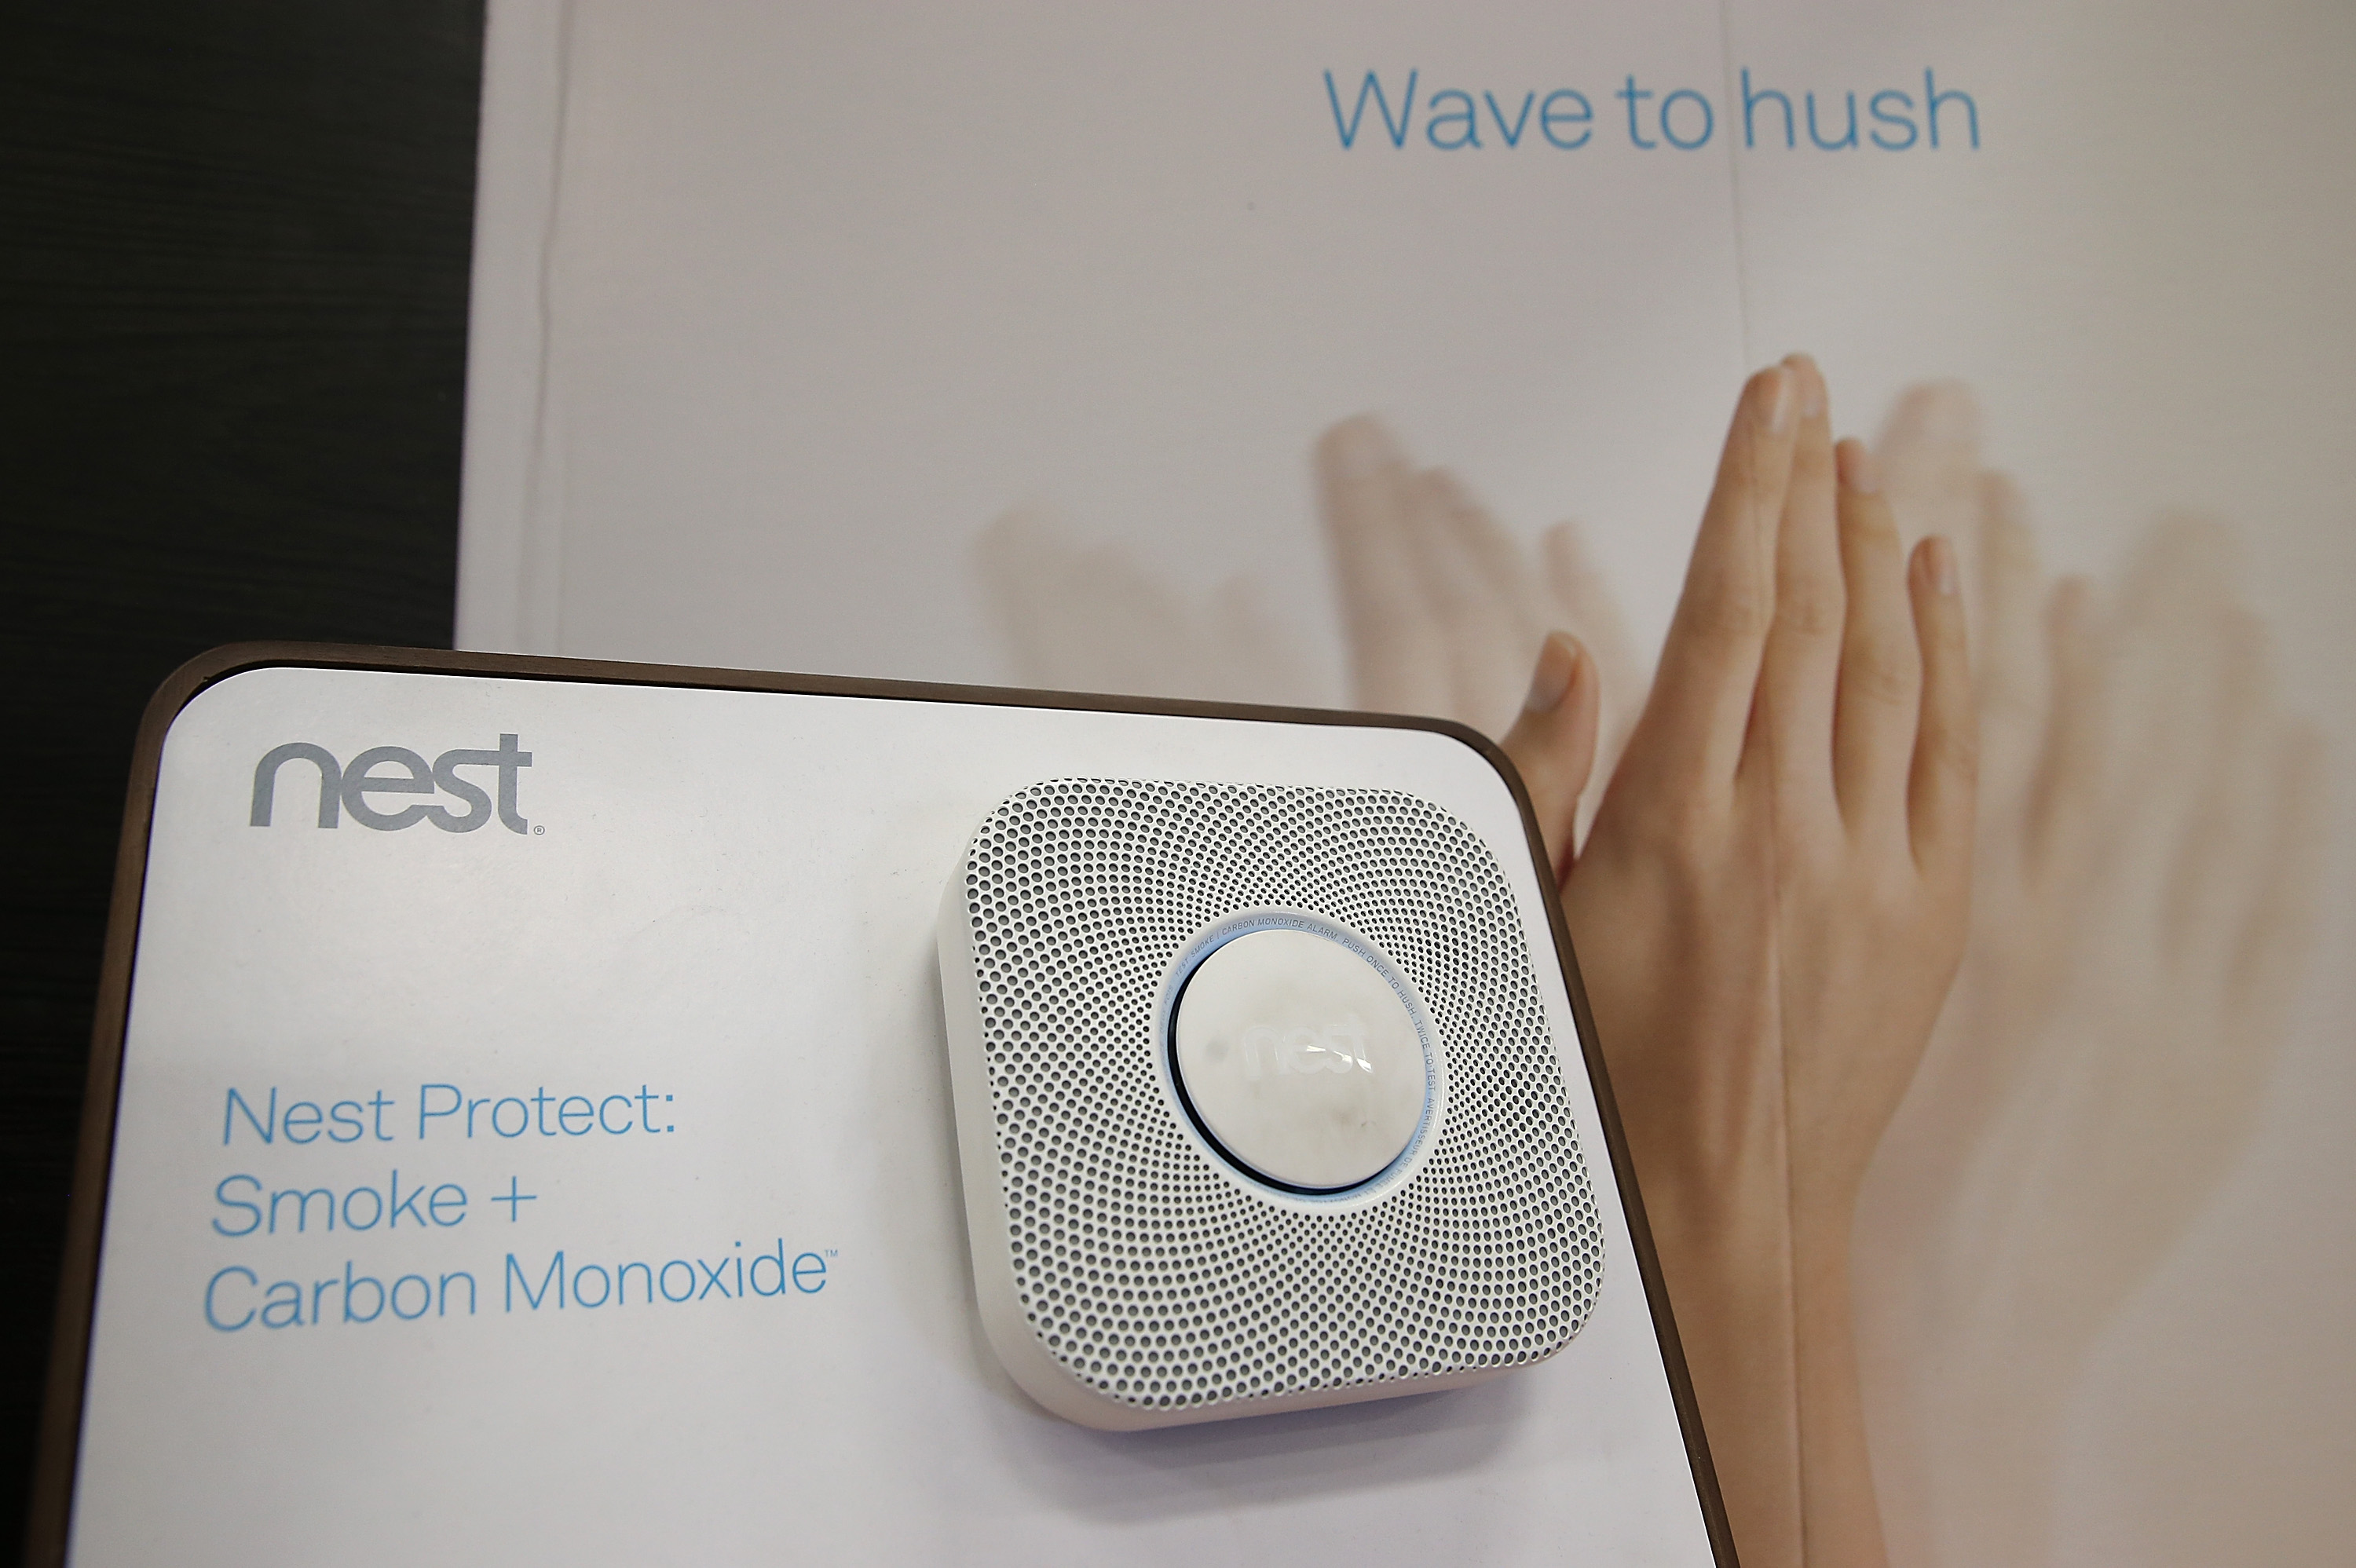 The Nest Protect smoke and carbon monoxide detector is displayed at a Home Depot store on January 13, 2014 in San Rafael, California.